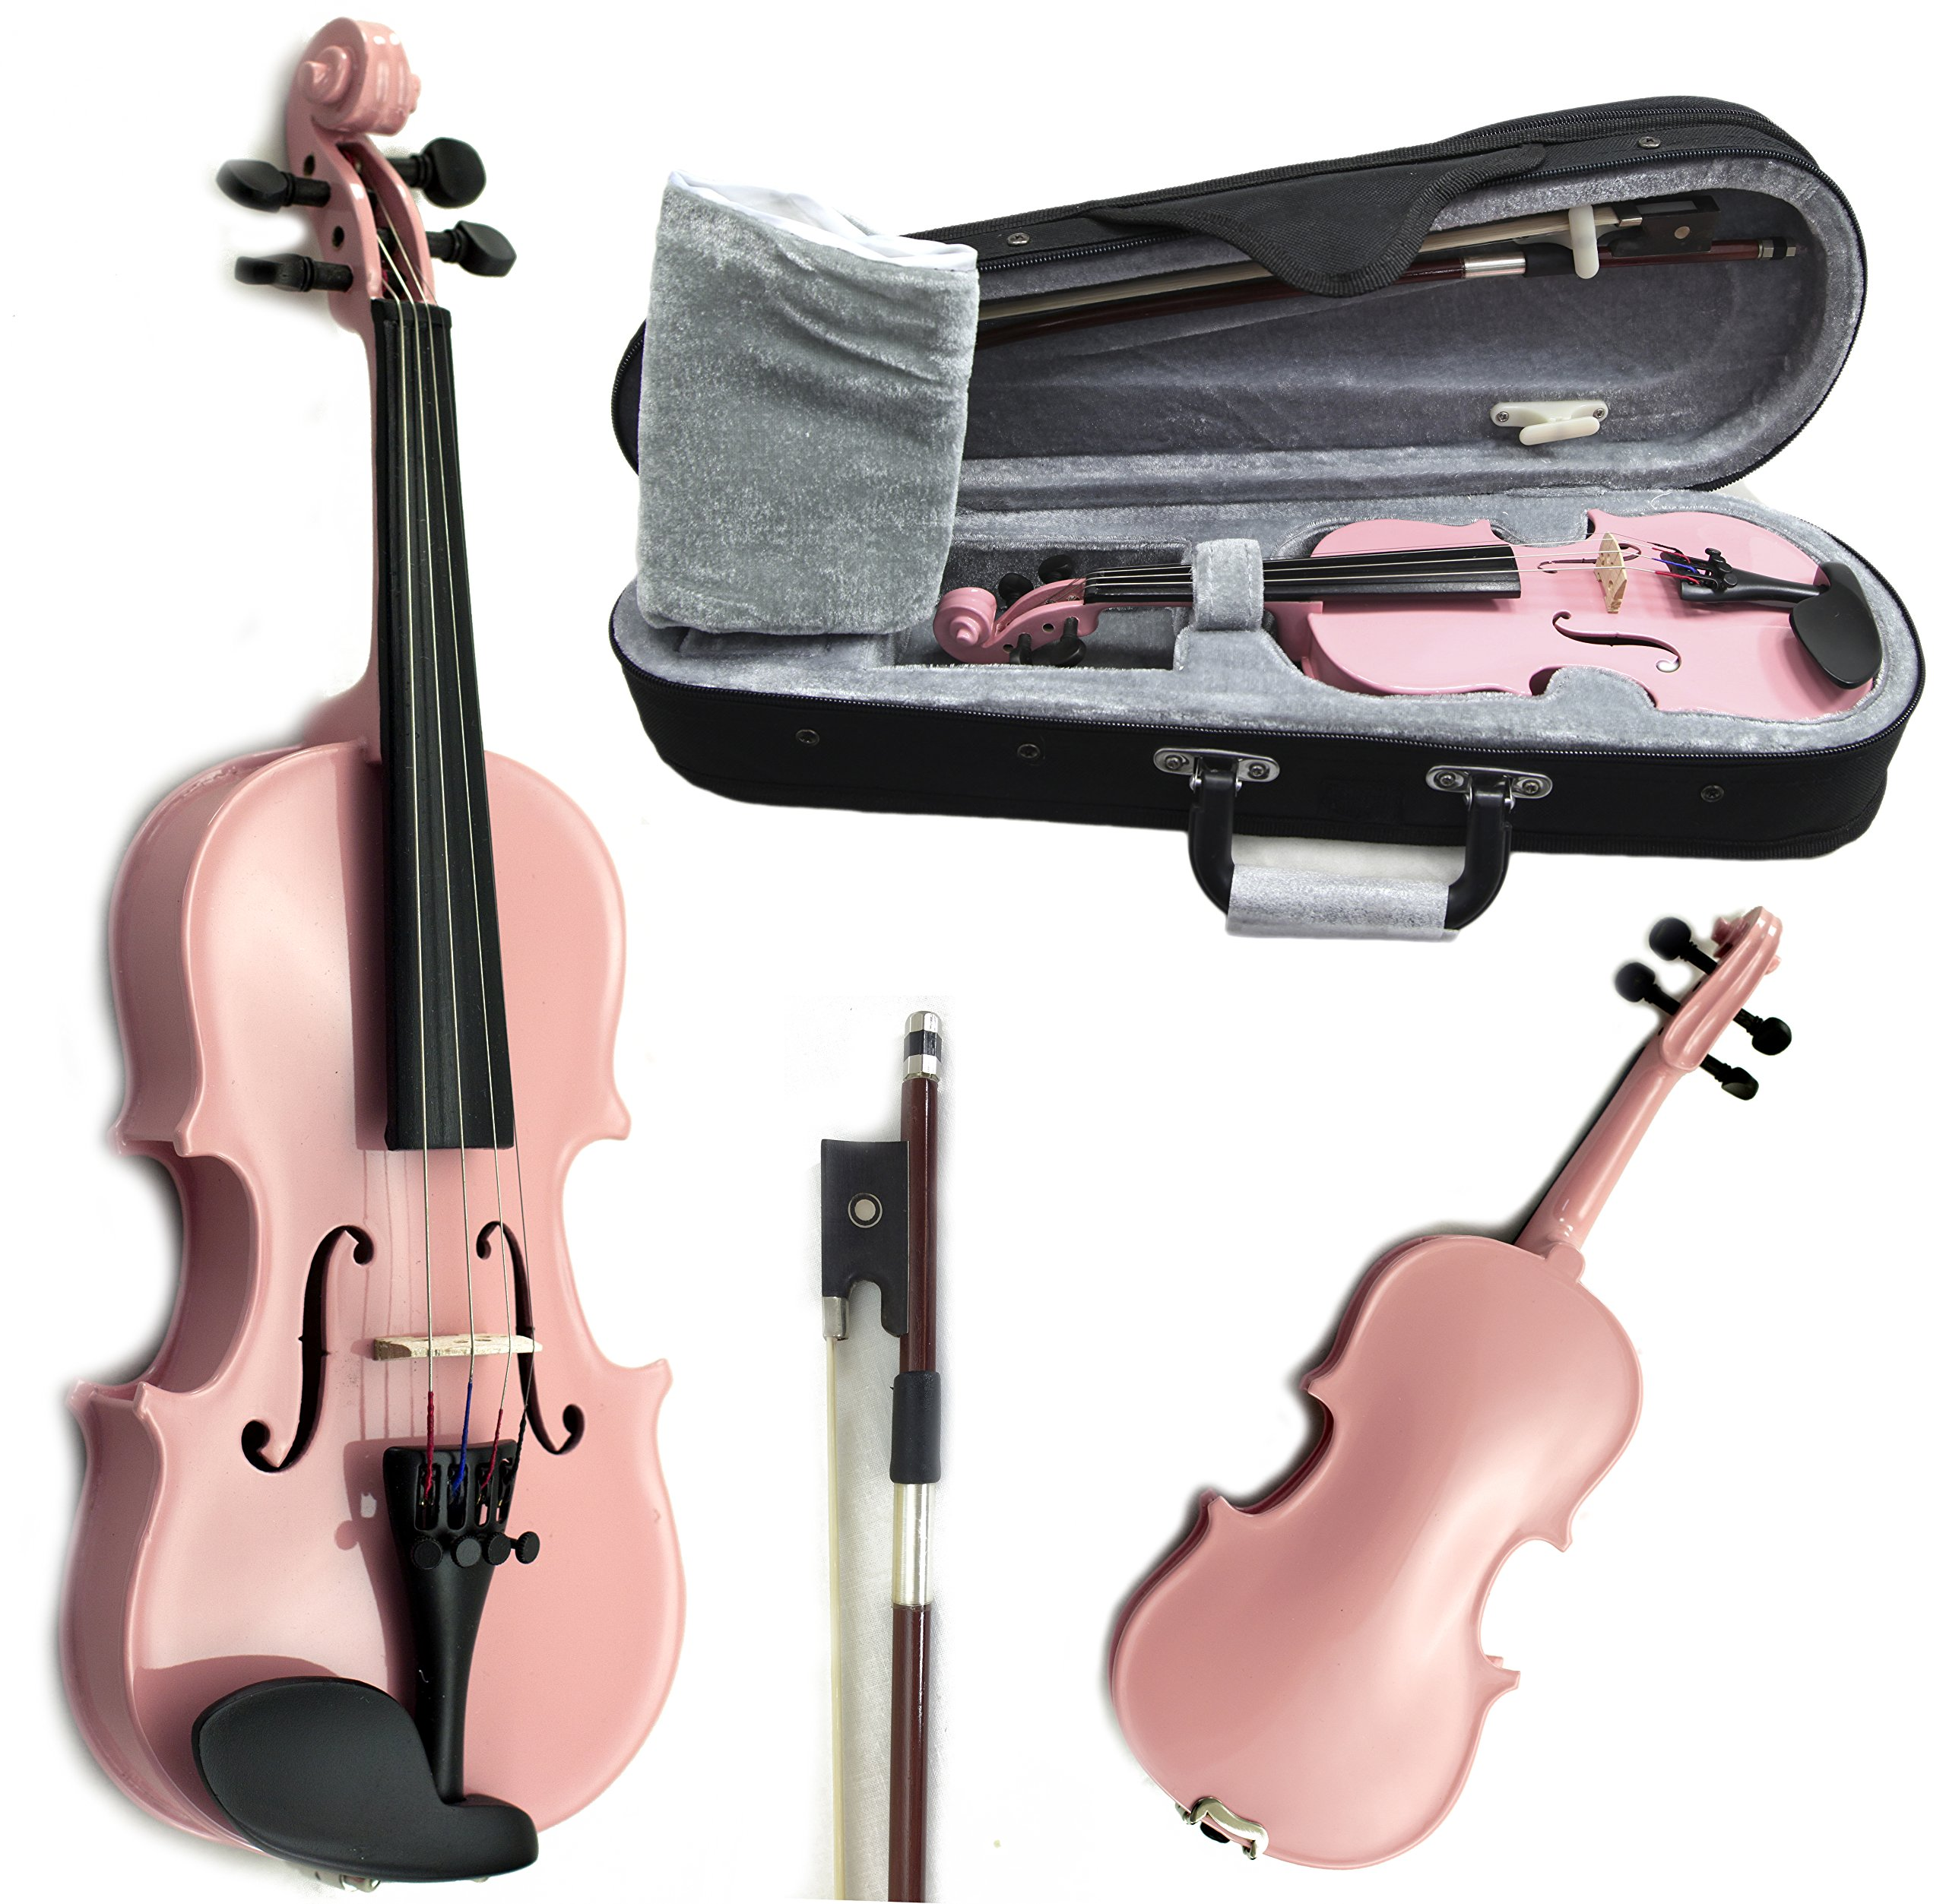 SKY Brand New Children's Violin 1/16 Size Pink Color by Sky (Image #1)